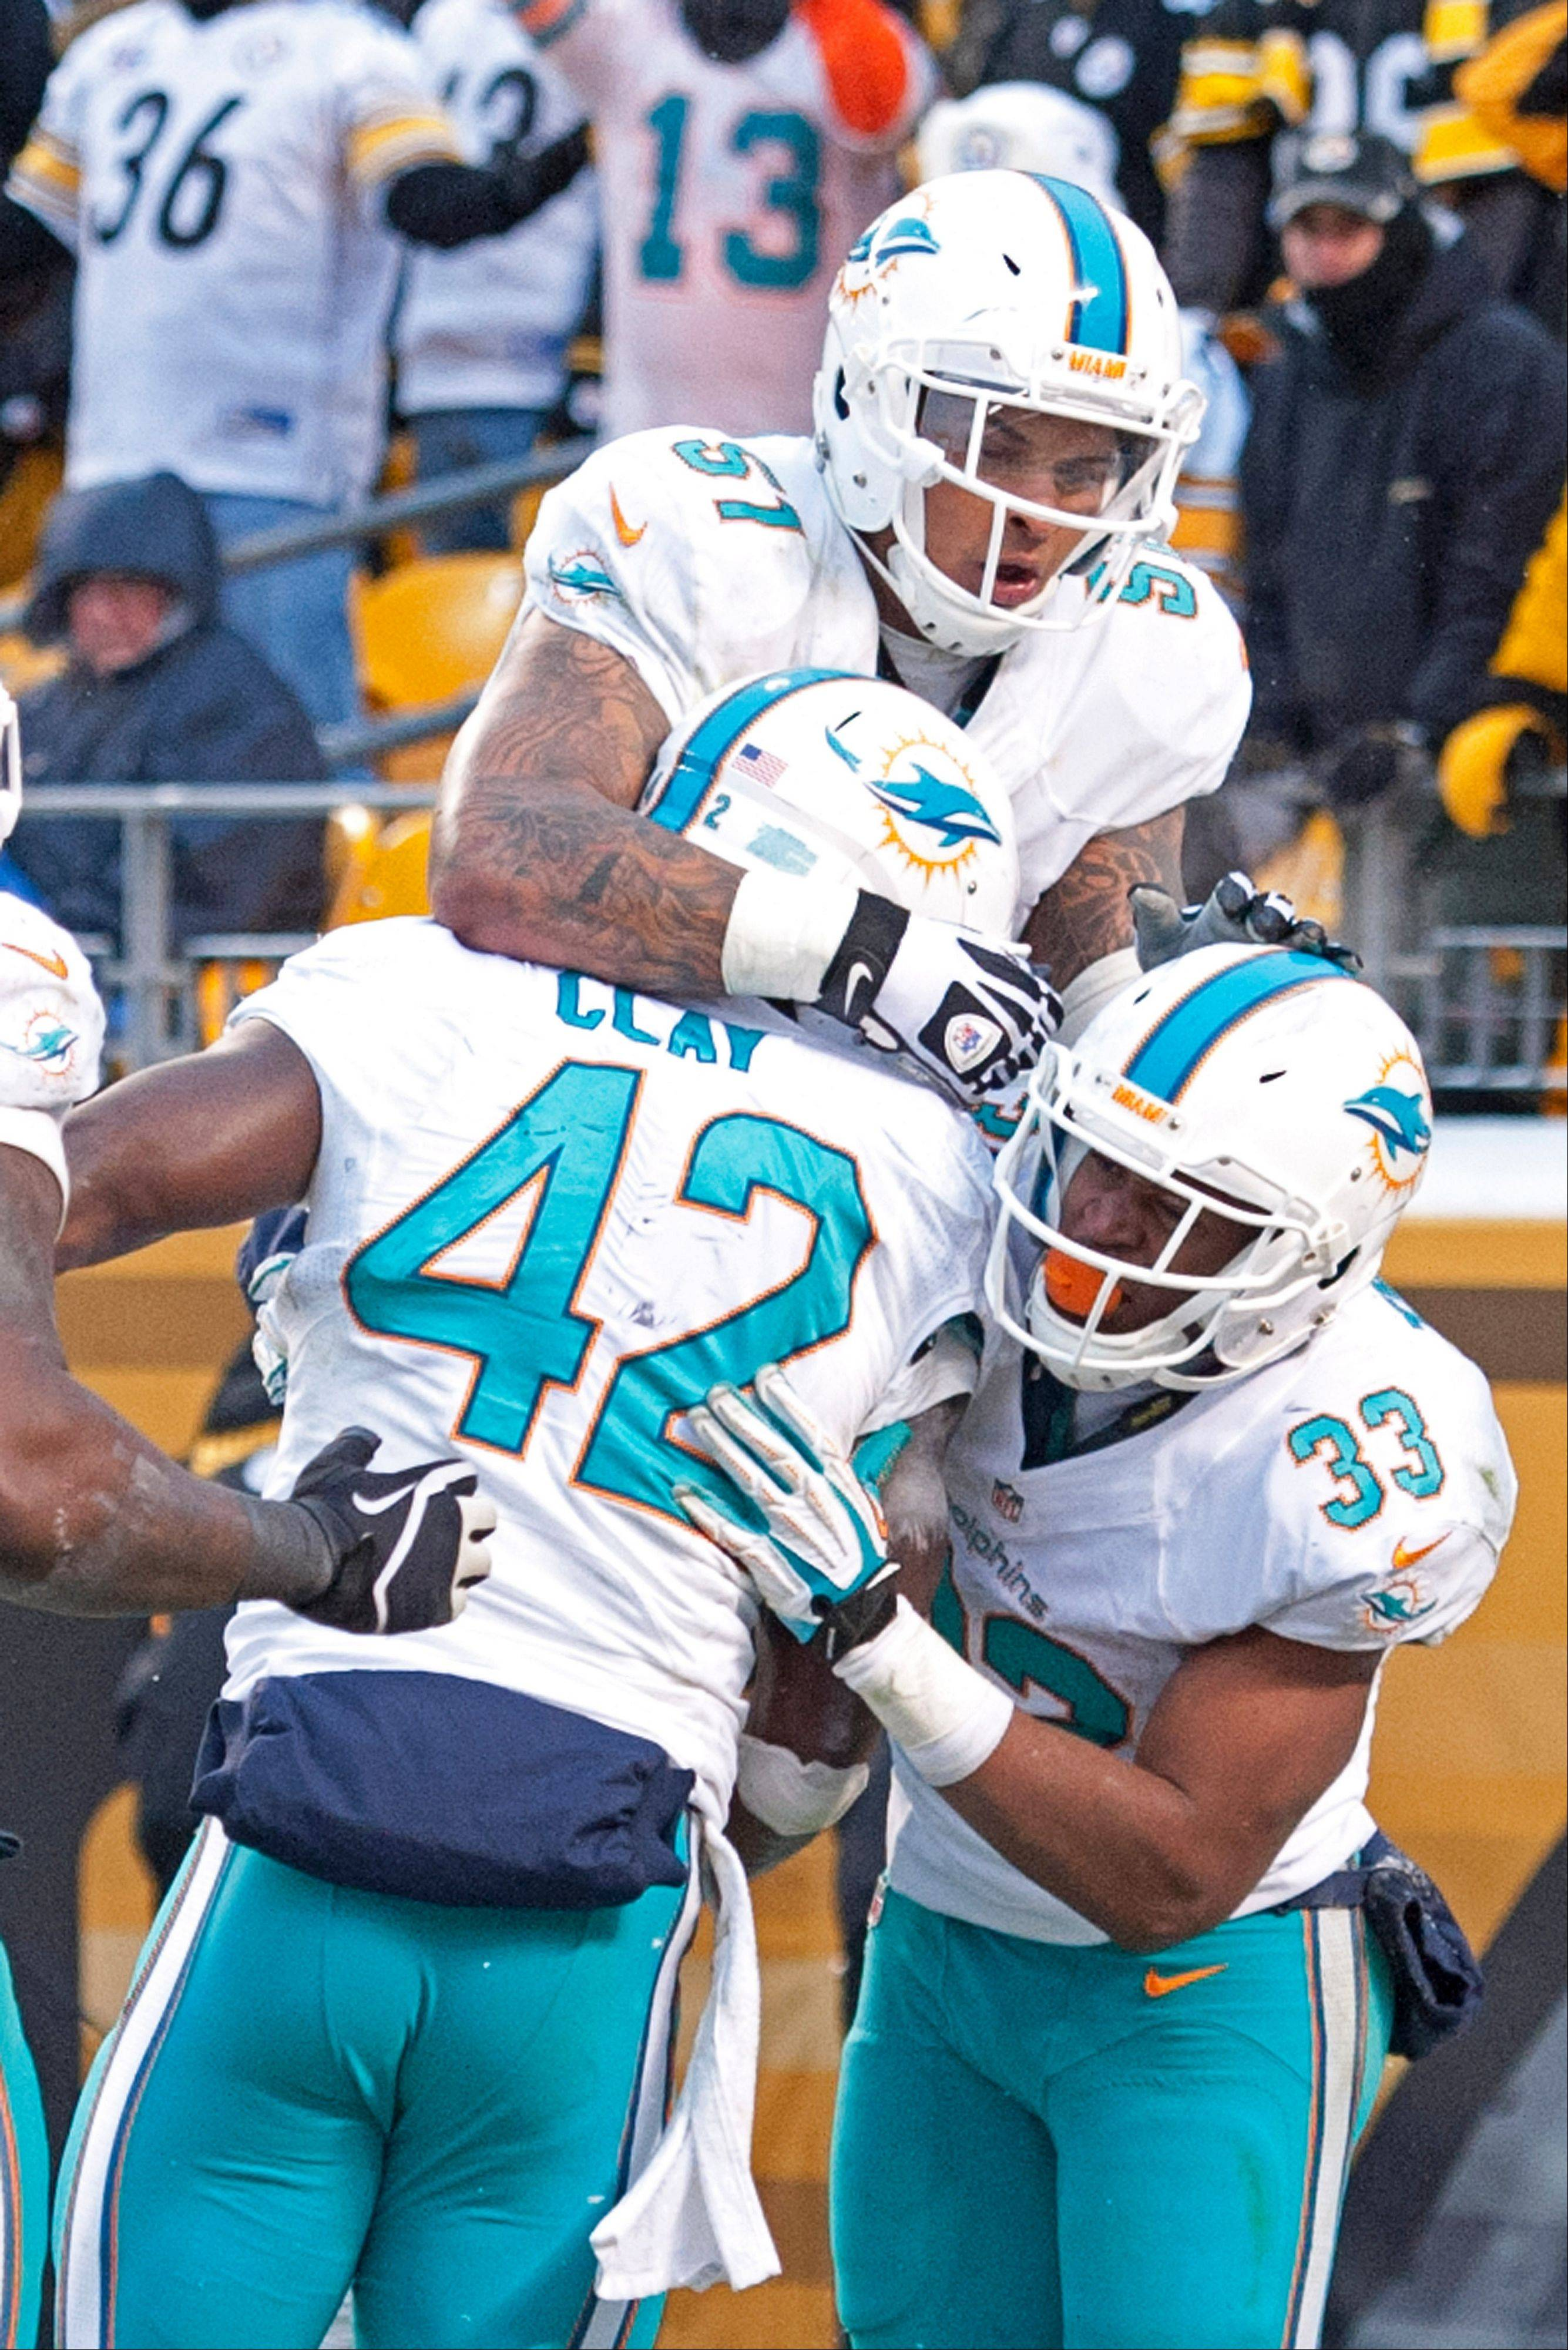 Miami Dolphins tight end Charles Clay (42) celebrates with Mike Pouncey (51) and Daniel Thomas (33) after scoring a touchdown during the second half of an NFL football game against the Pittsburgh Steelers in Pittsburgh, Sunday, Dec. 8, 2013.